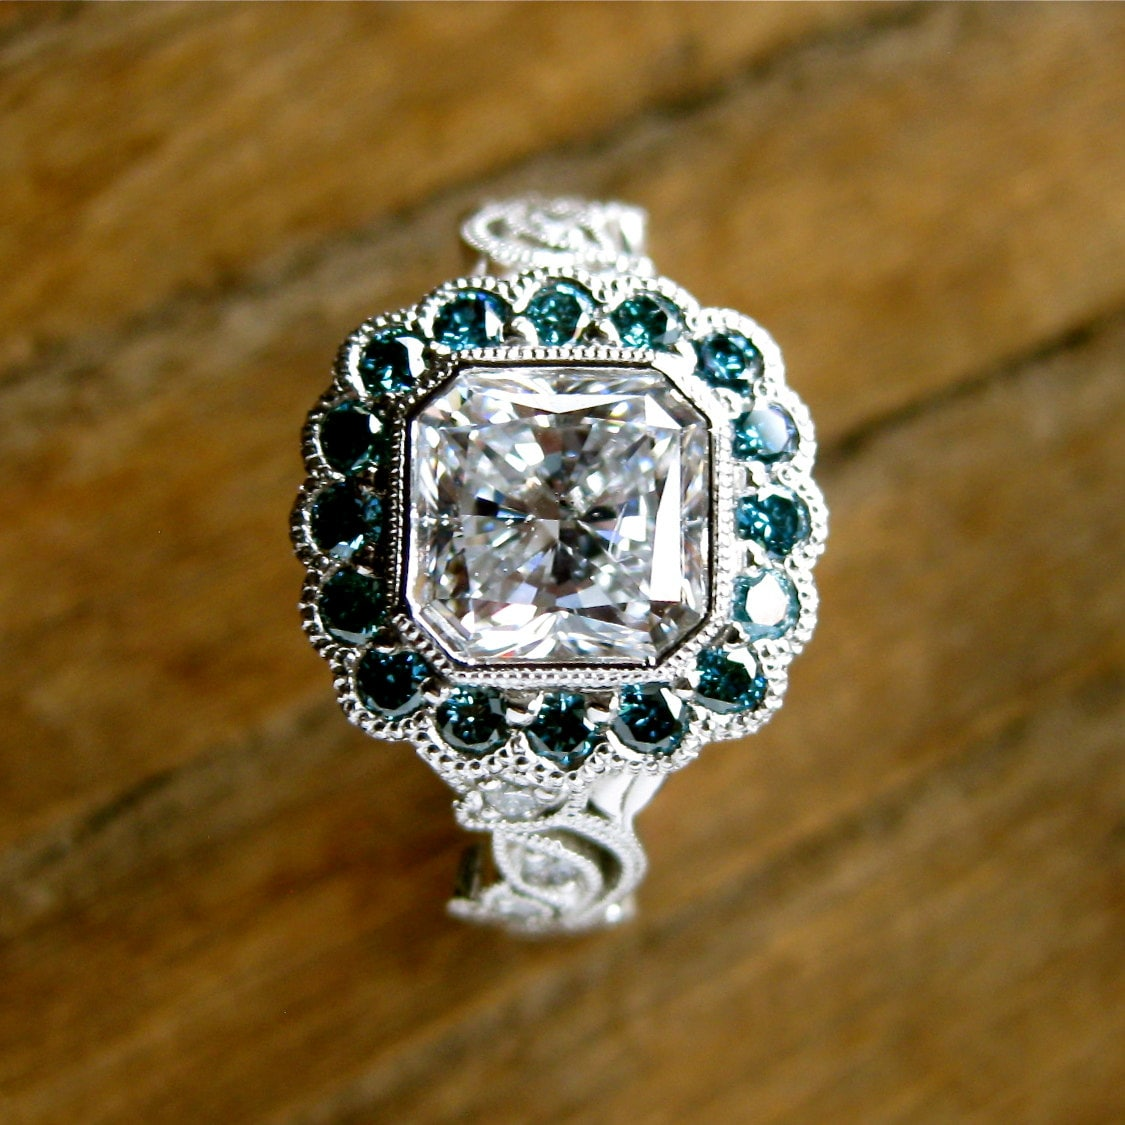 Radiant Cut Diamond Engagement Ring In Platinum With Teal Blue